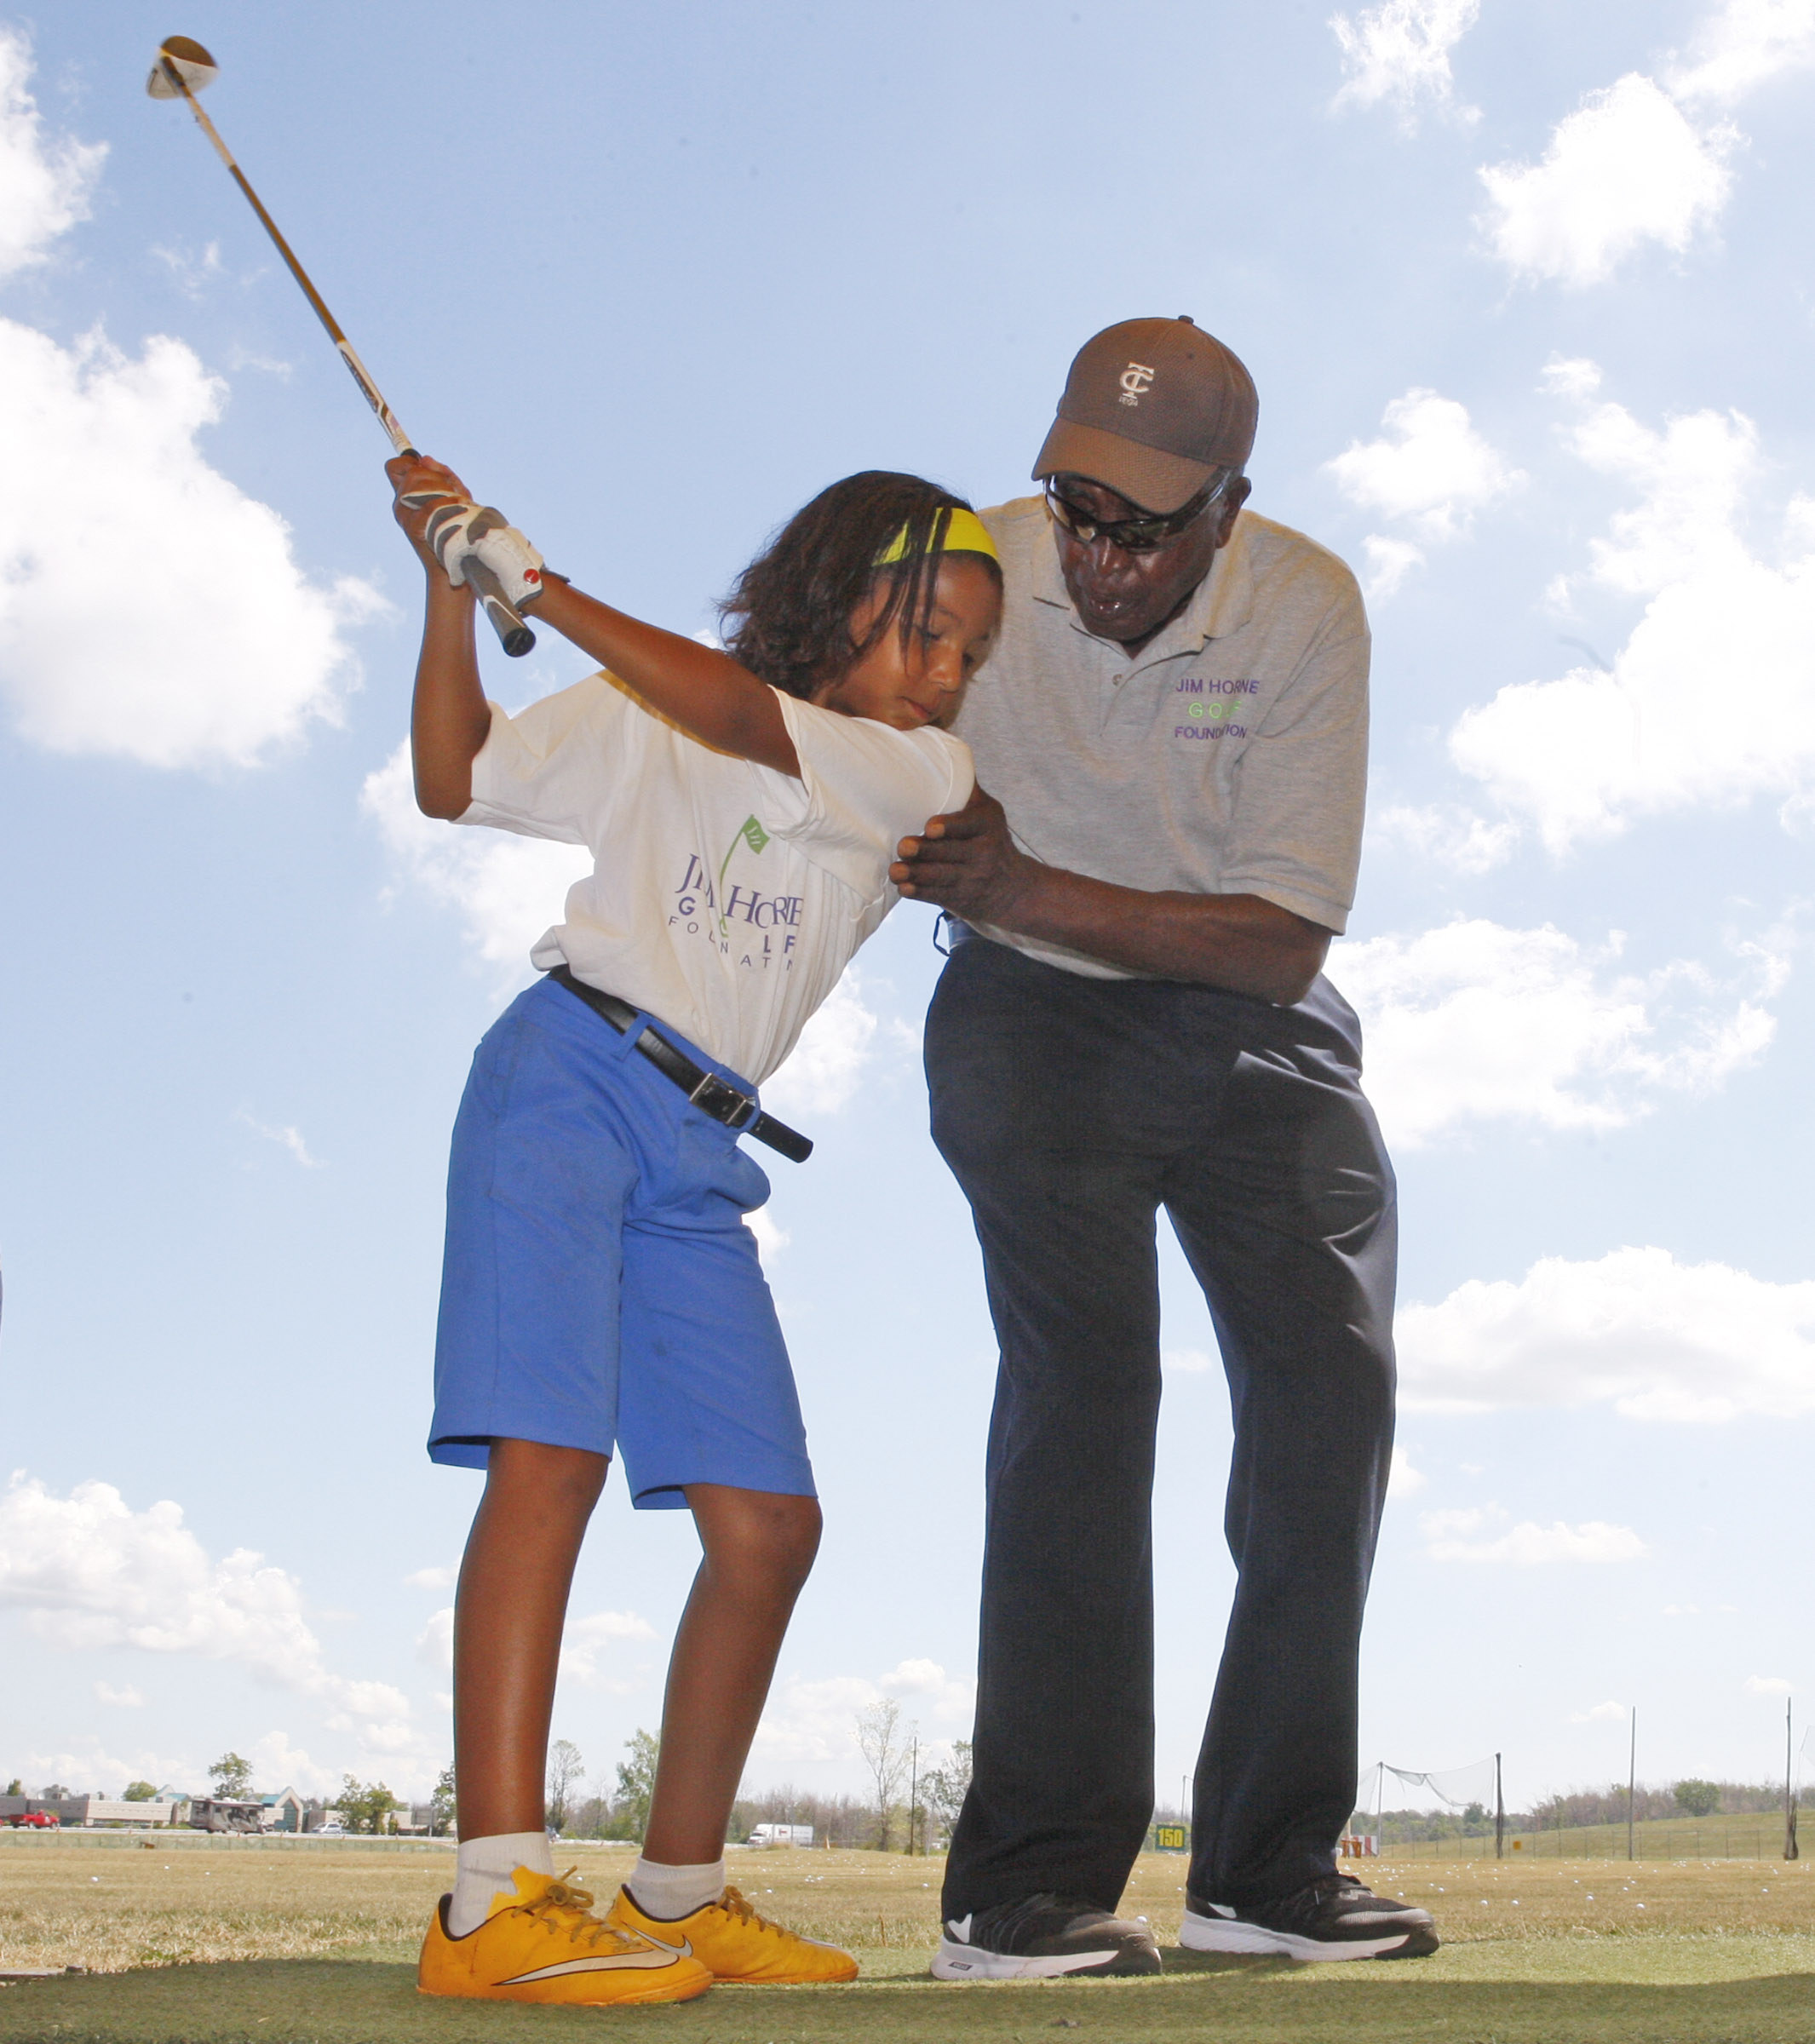 Jim Horne is an 84-year-old former UB basketball player and Harlem Globetrotter gives free golf lessons to Sierra Warren at the Airport driving range on Wednesday, Aug. 3, 2016. (Harry Scull Jr./Buffalo News)